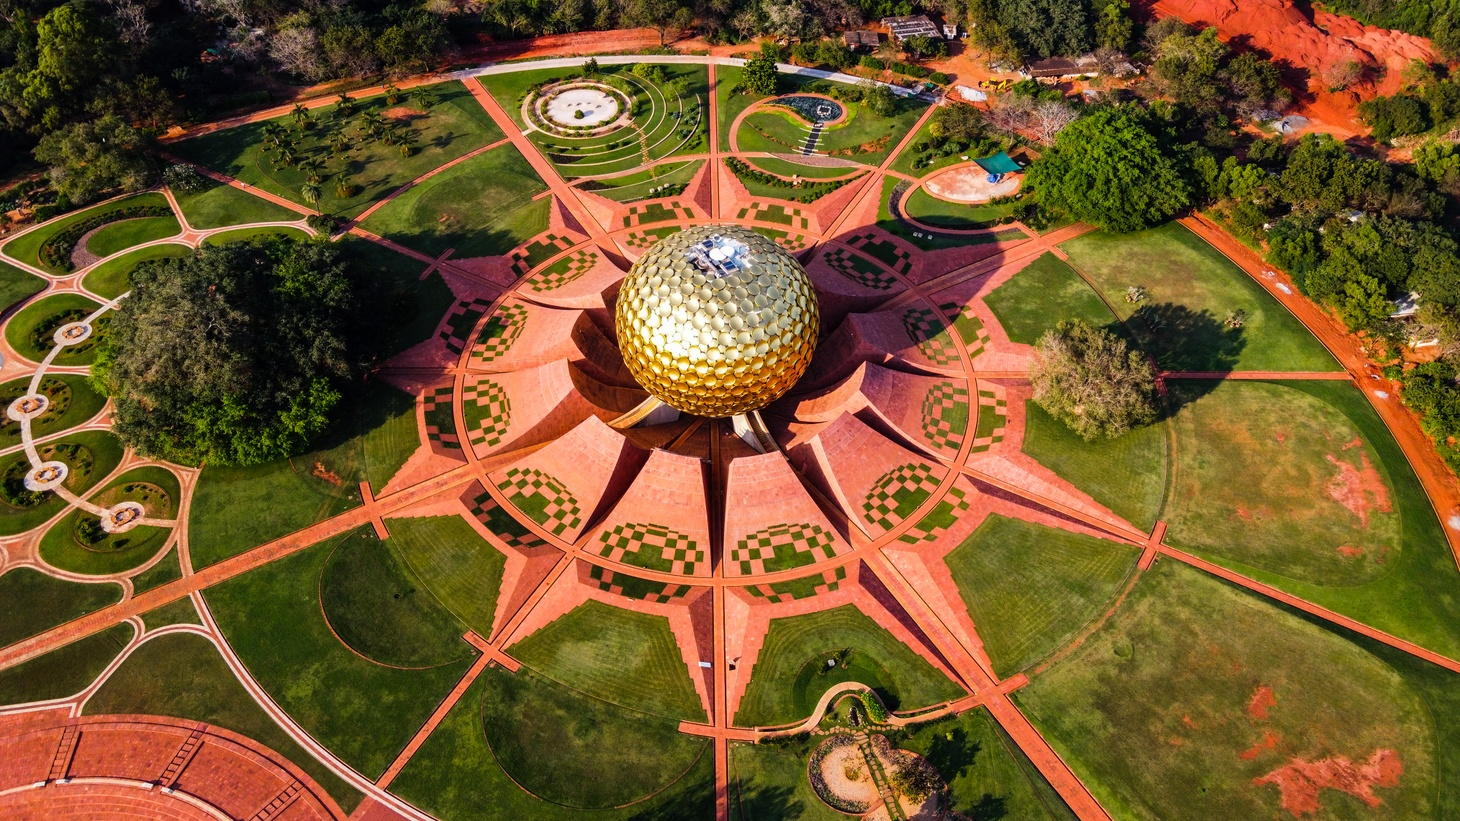 Arial view of Auroville. Auroville is an experimental township in Viluppuram district mostly in the state of Tamil Nadu, India with some parts in the Union Territory of Puducherry in India.